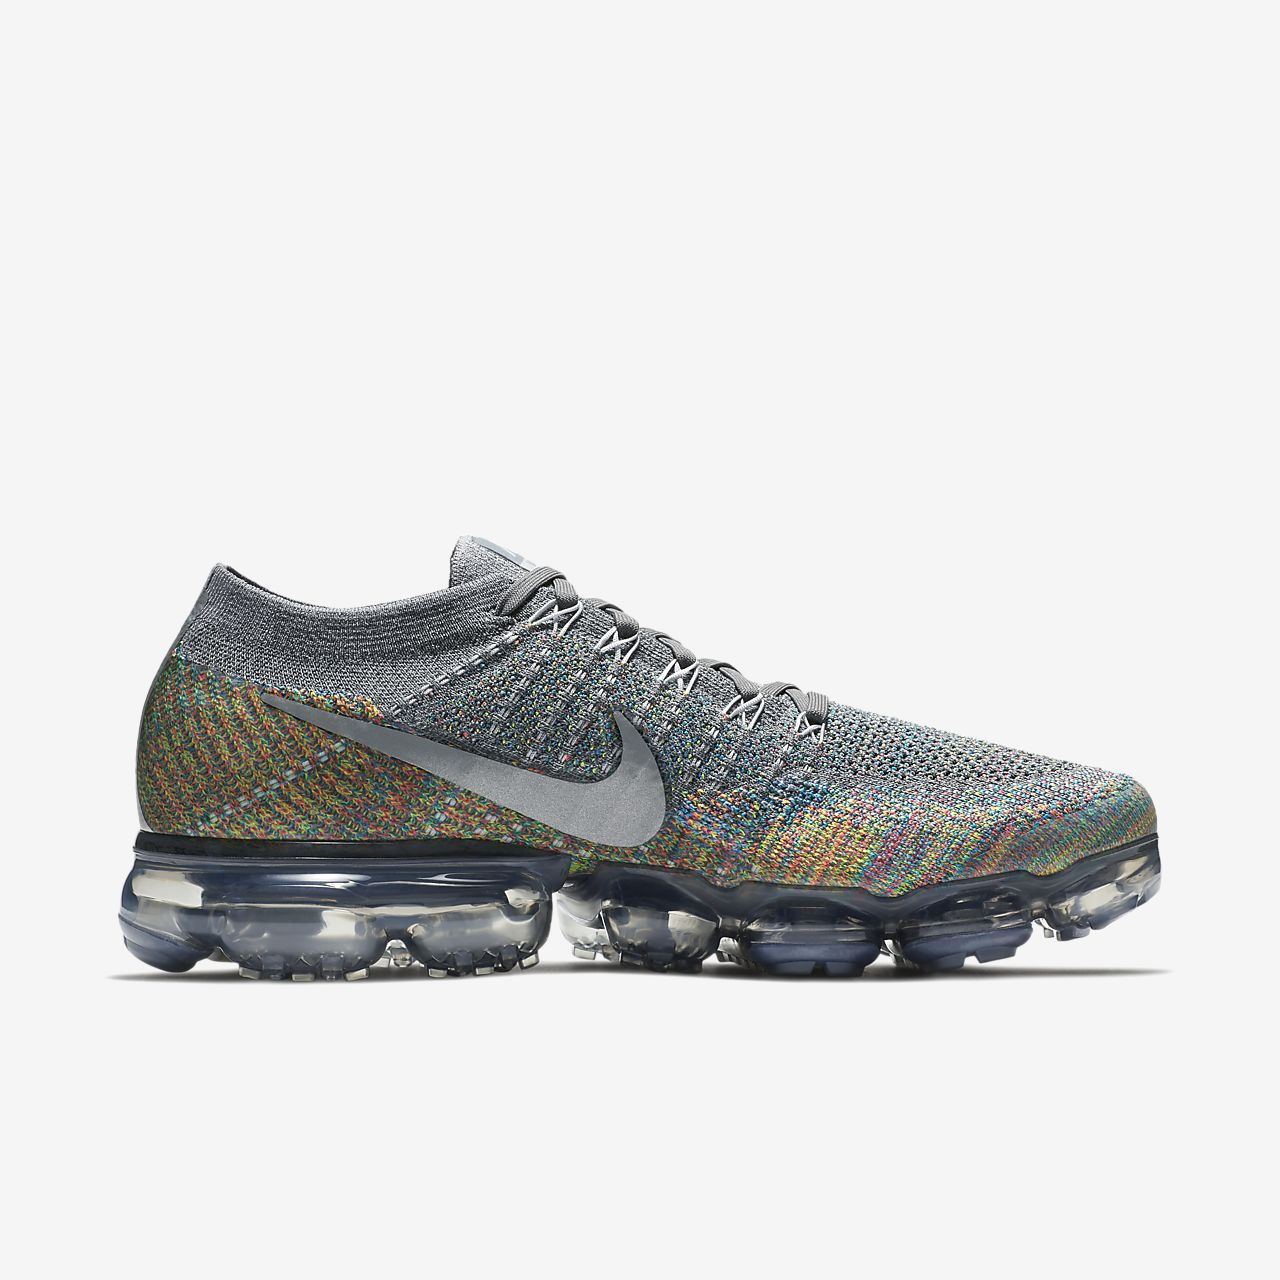 432d3206c5 Ανδρικό παπούτσι Nike Air VaporMax Flyknit. Nike.com GR